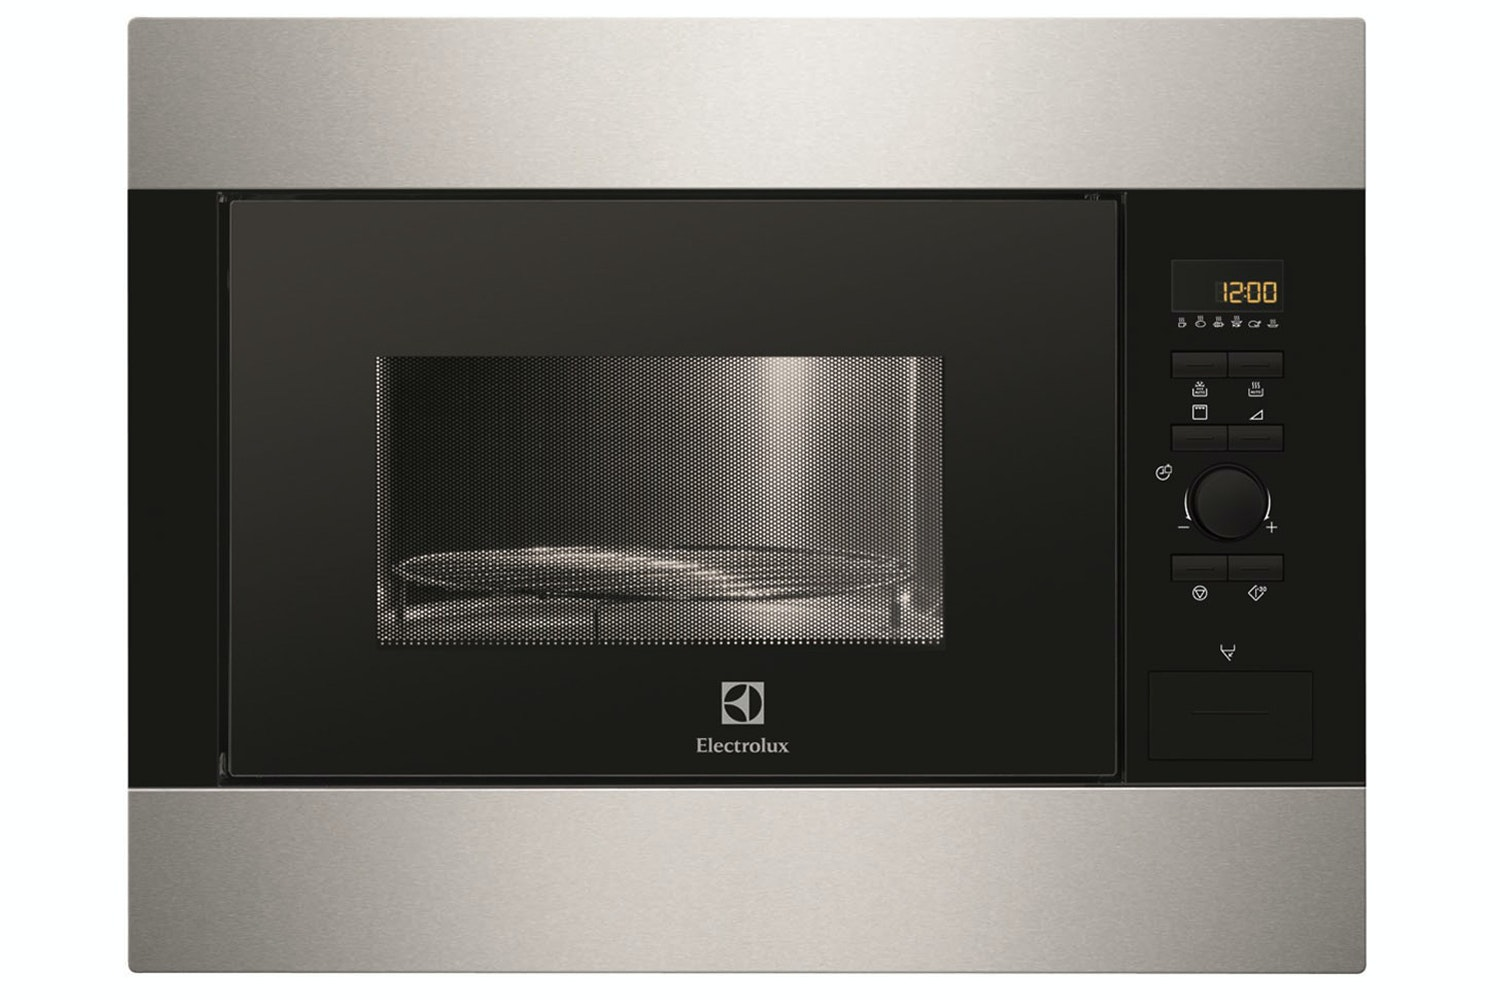 Electrolux 26L 900W Built-in Microwave | Stainless Steel